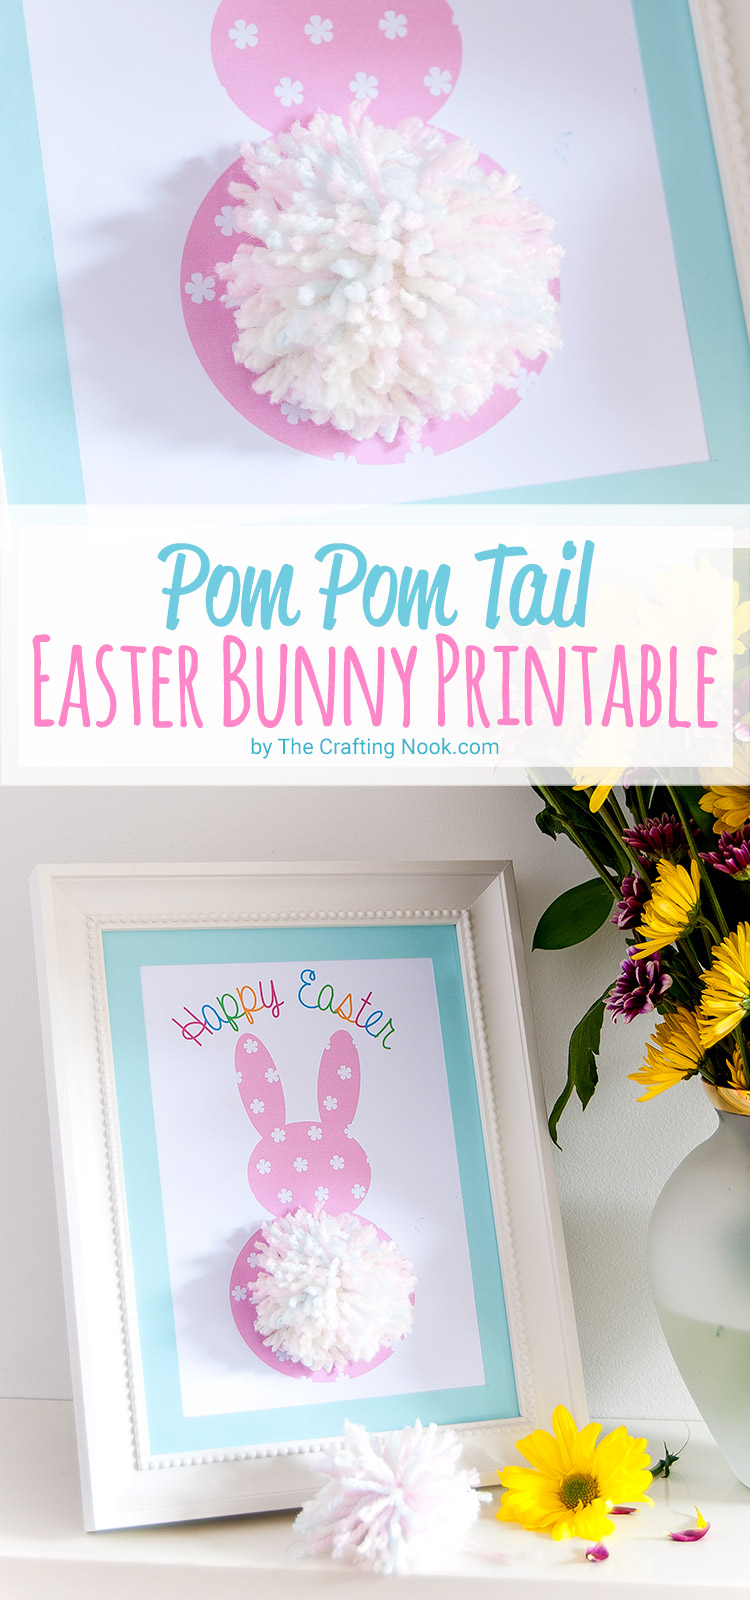 graphic relating to Pin the Tail on the Bunny Printable identify Pom Pom Tail Easter Bunny Printable The Creating Nook